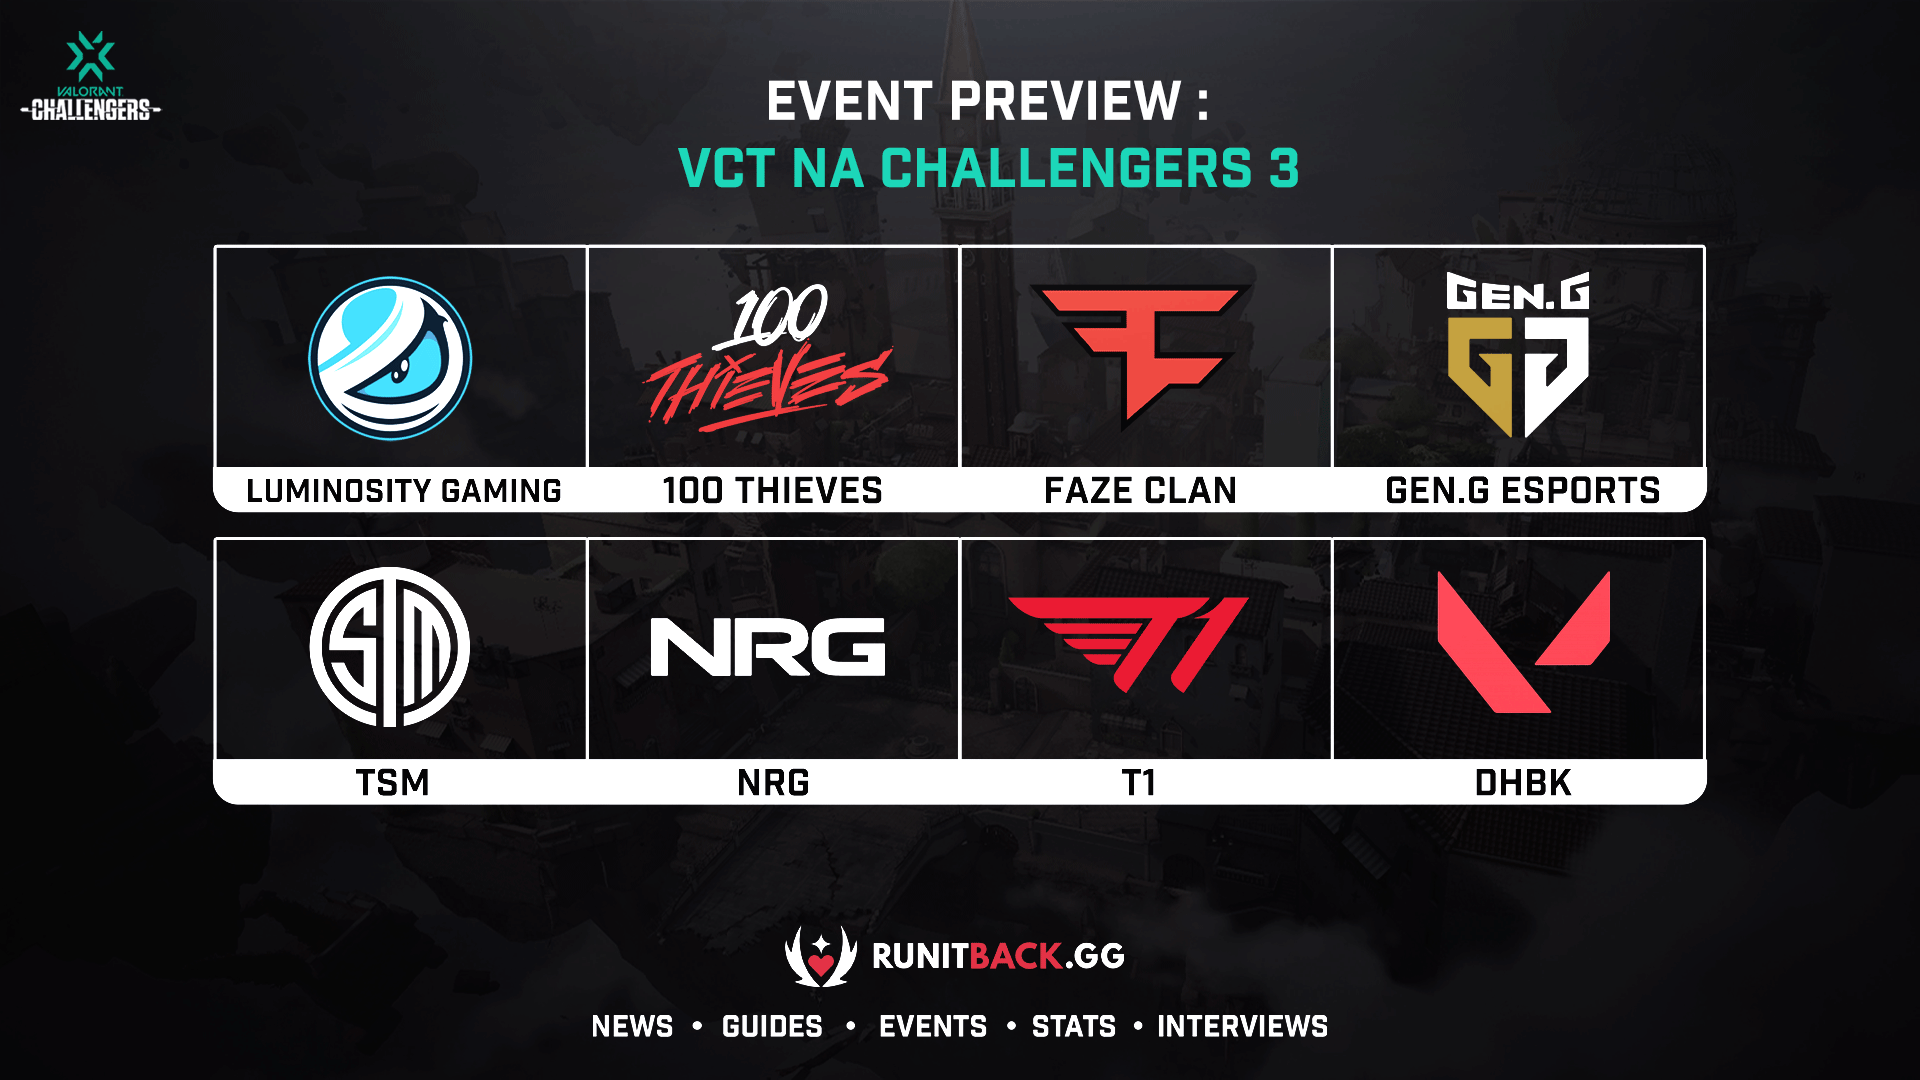 VCT NA Challengers 3 Main Event Preview